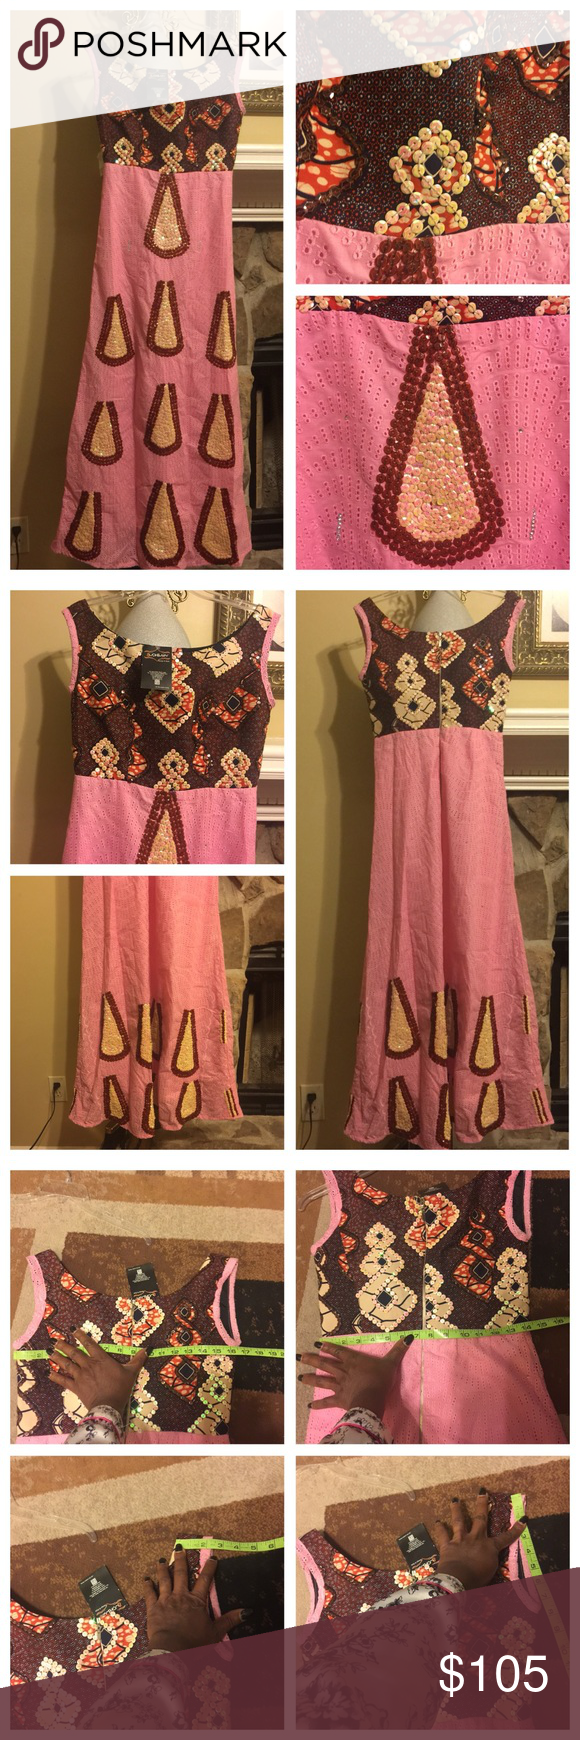 Elegant and Classic African Long dress—New New Elegant African Lace and English wax maxi gown/dress embellished with Rhinestones for a very classy look. Size 12 British measurement but for your true measurements please see photos. No trade, no hold, and no modeling. meticulously Handmade Dresses Maxi